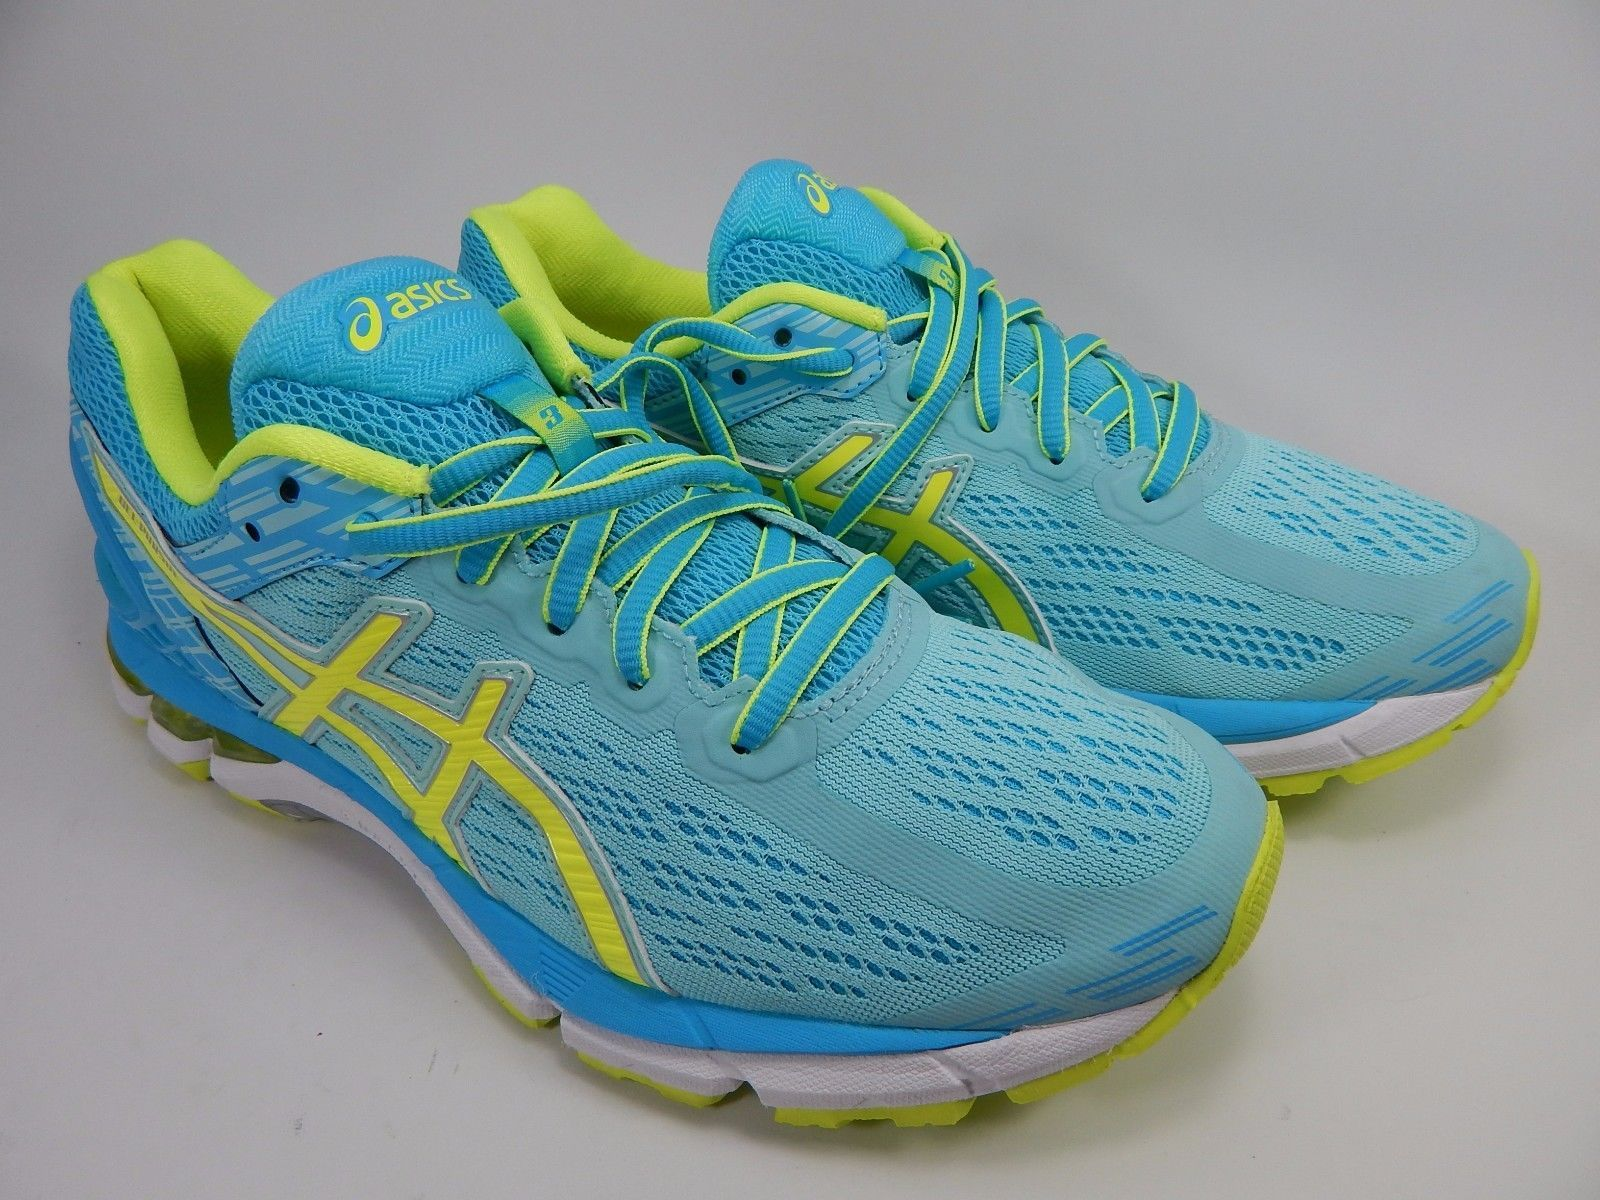 Asics Gel Pursue 3 Women's Running Shoes Size US 8.5 M (B) EU 40 Blue T6C5N